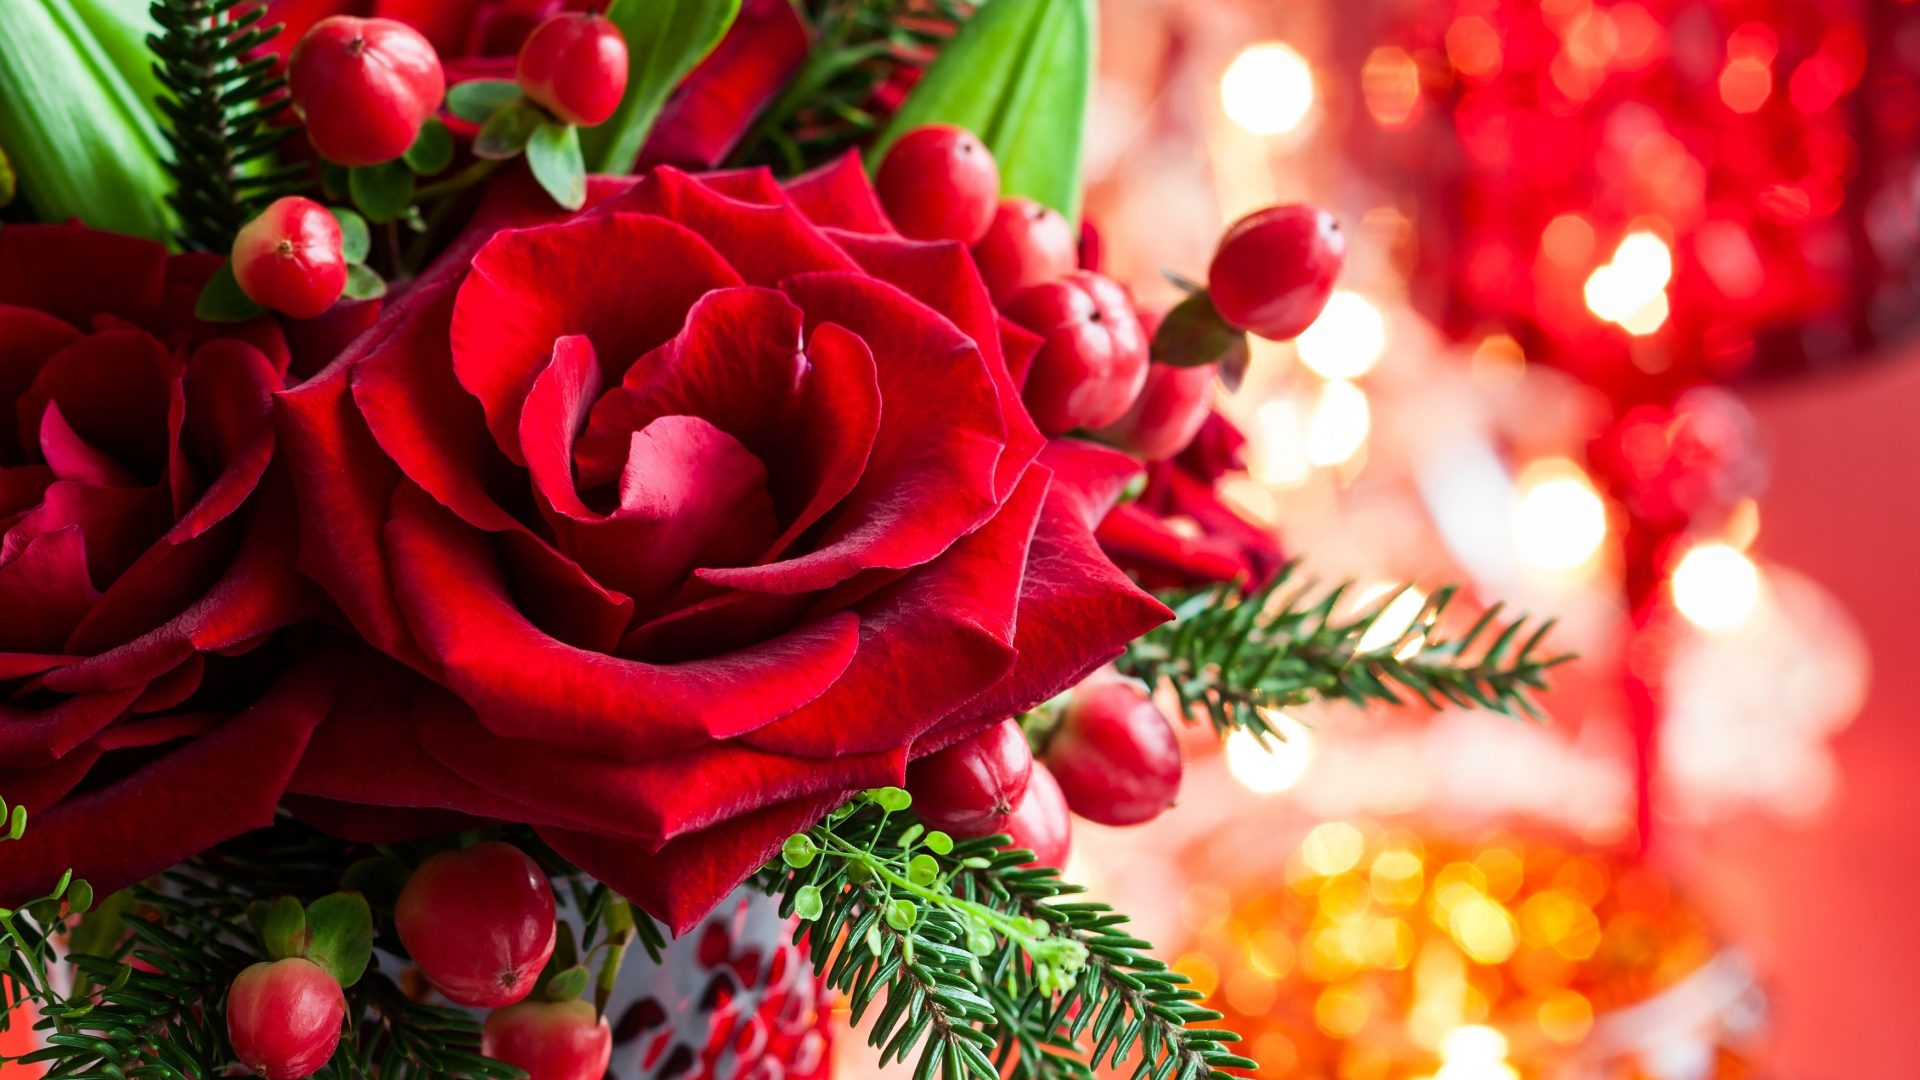 magic love bokeh red xmas roses merry rose christmas blooms karlsruhe blooms adventskalender gewinnspiel